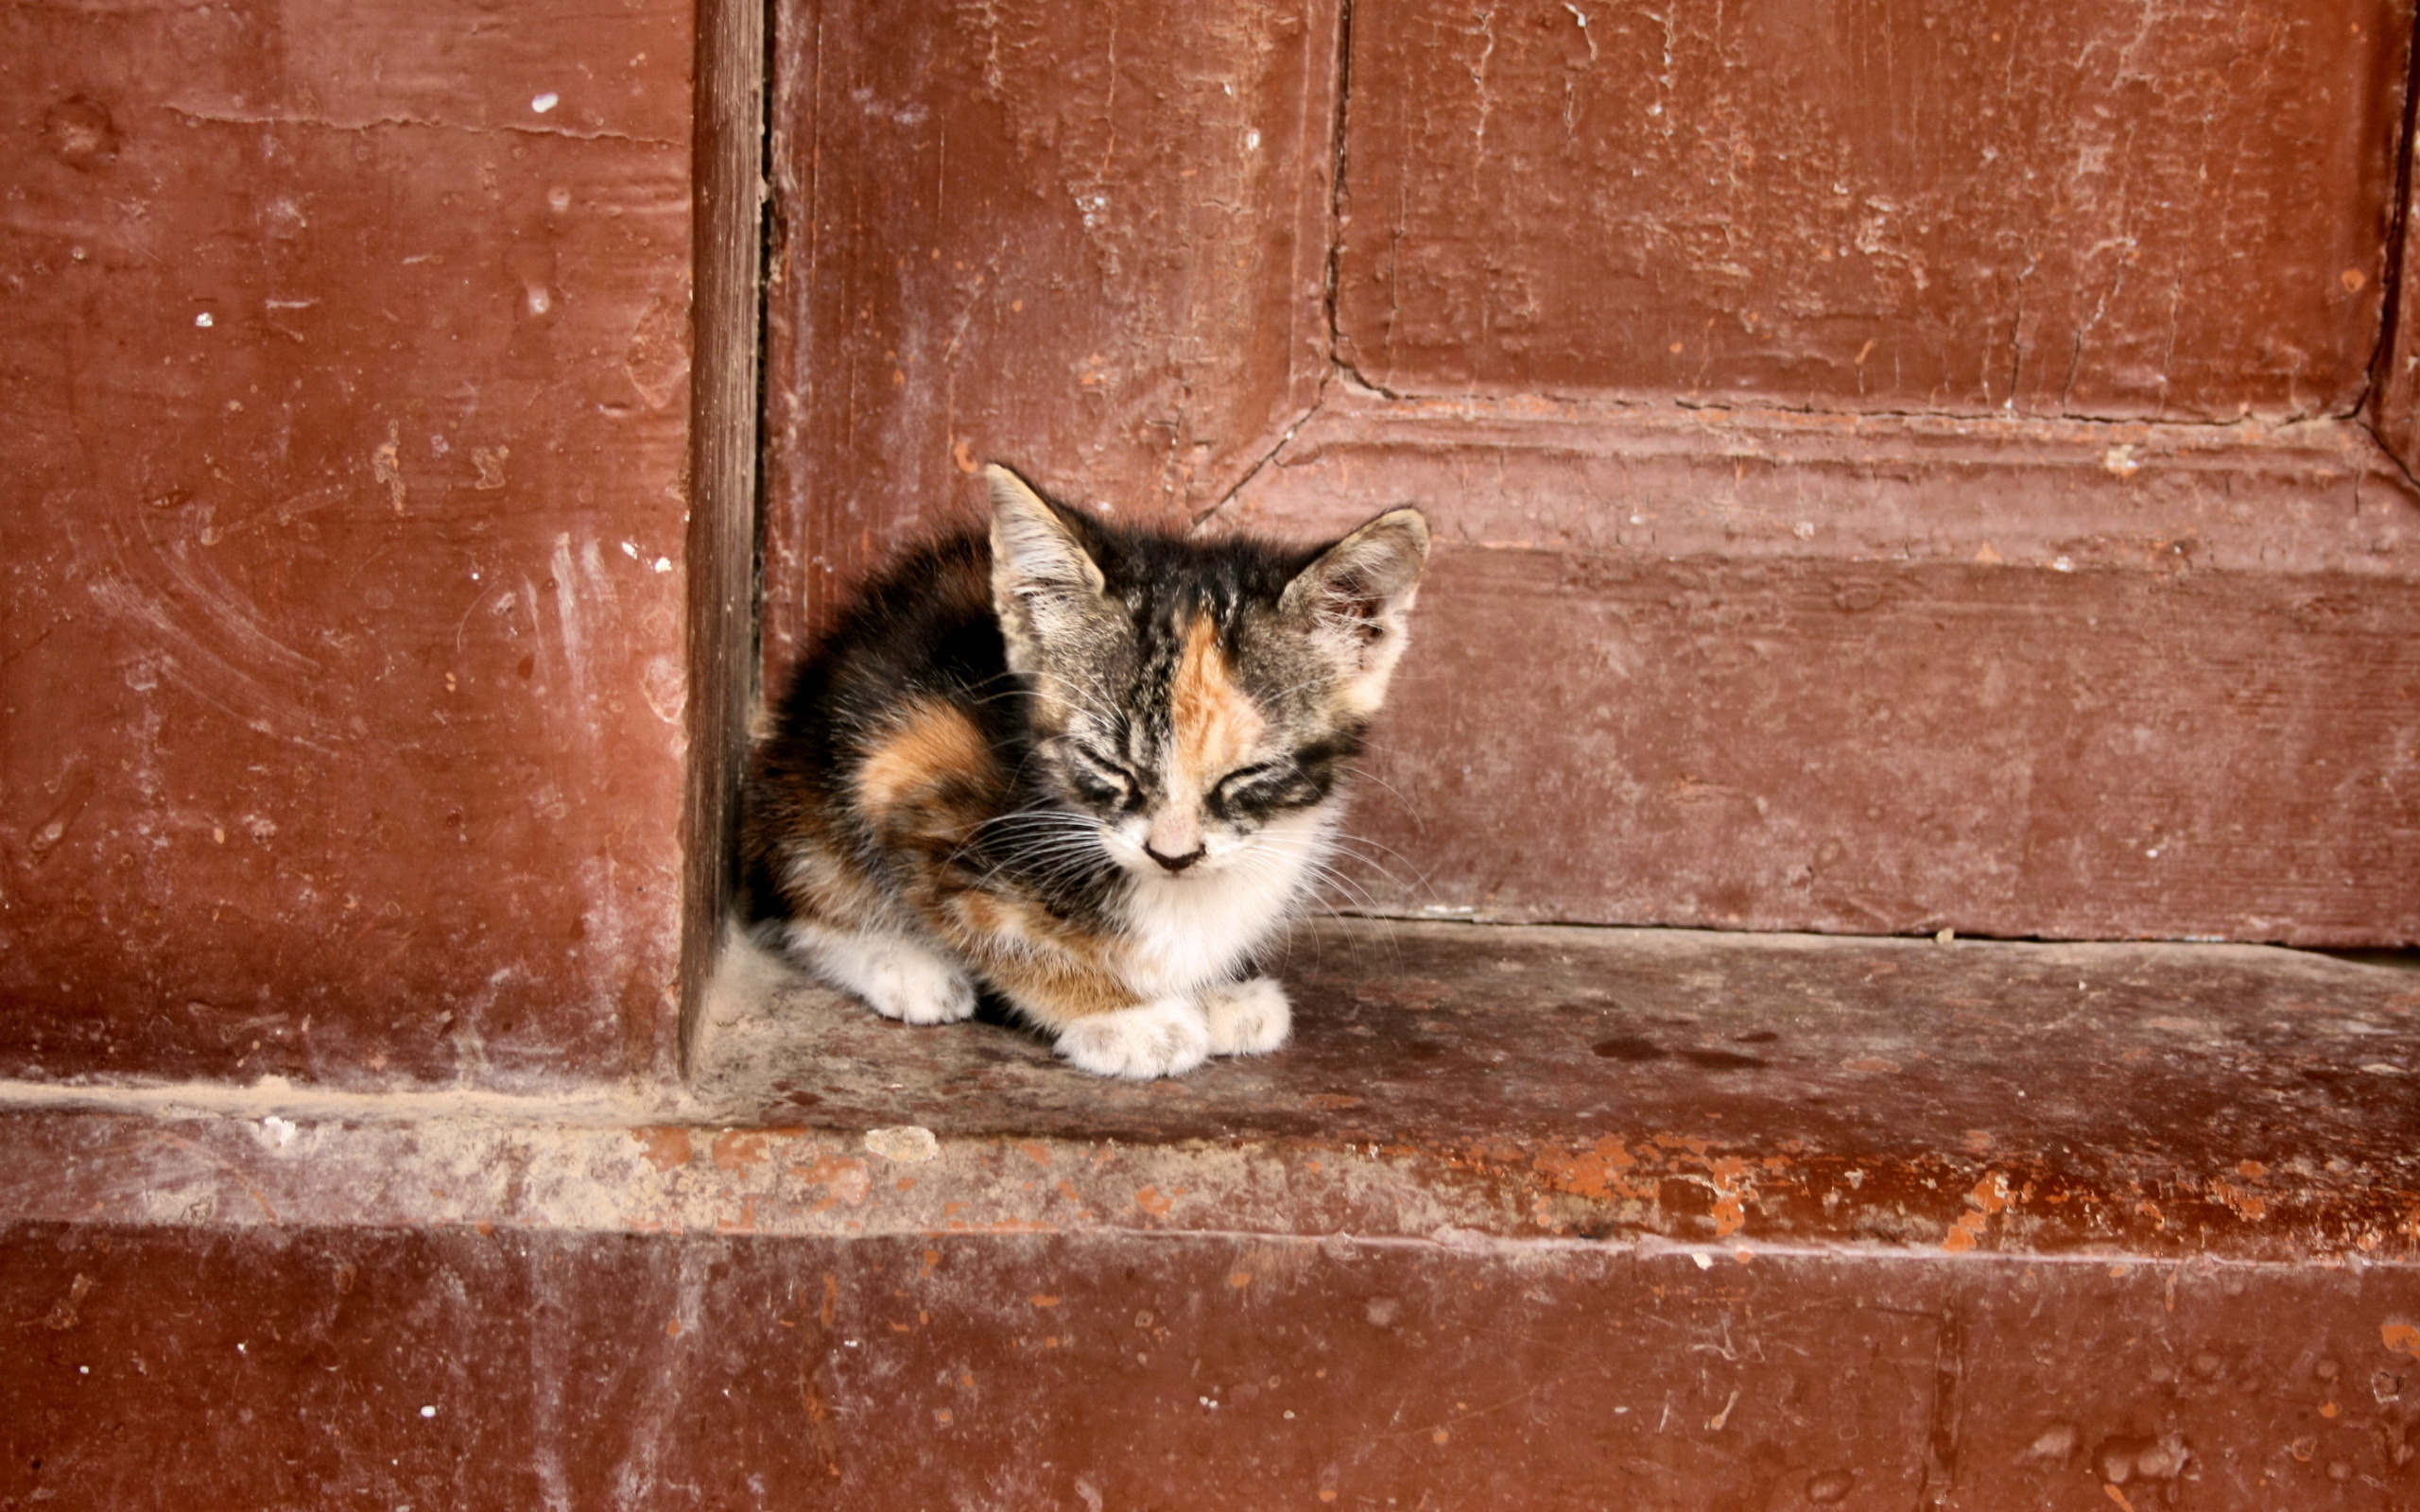 www-getbg-net_animals___cats_lonely_kitten_041784_